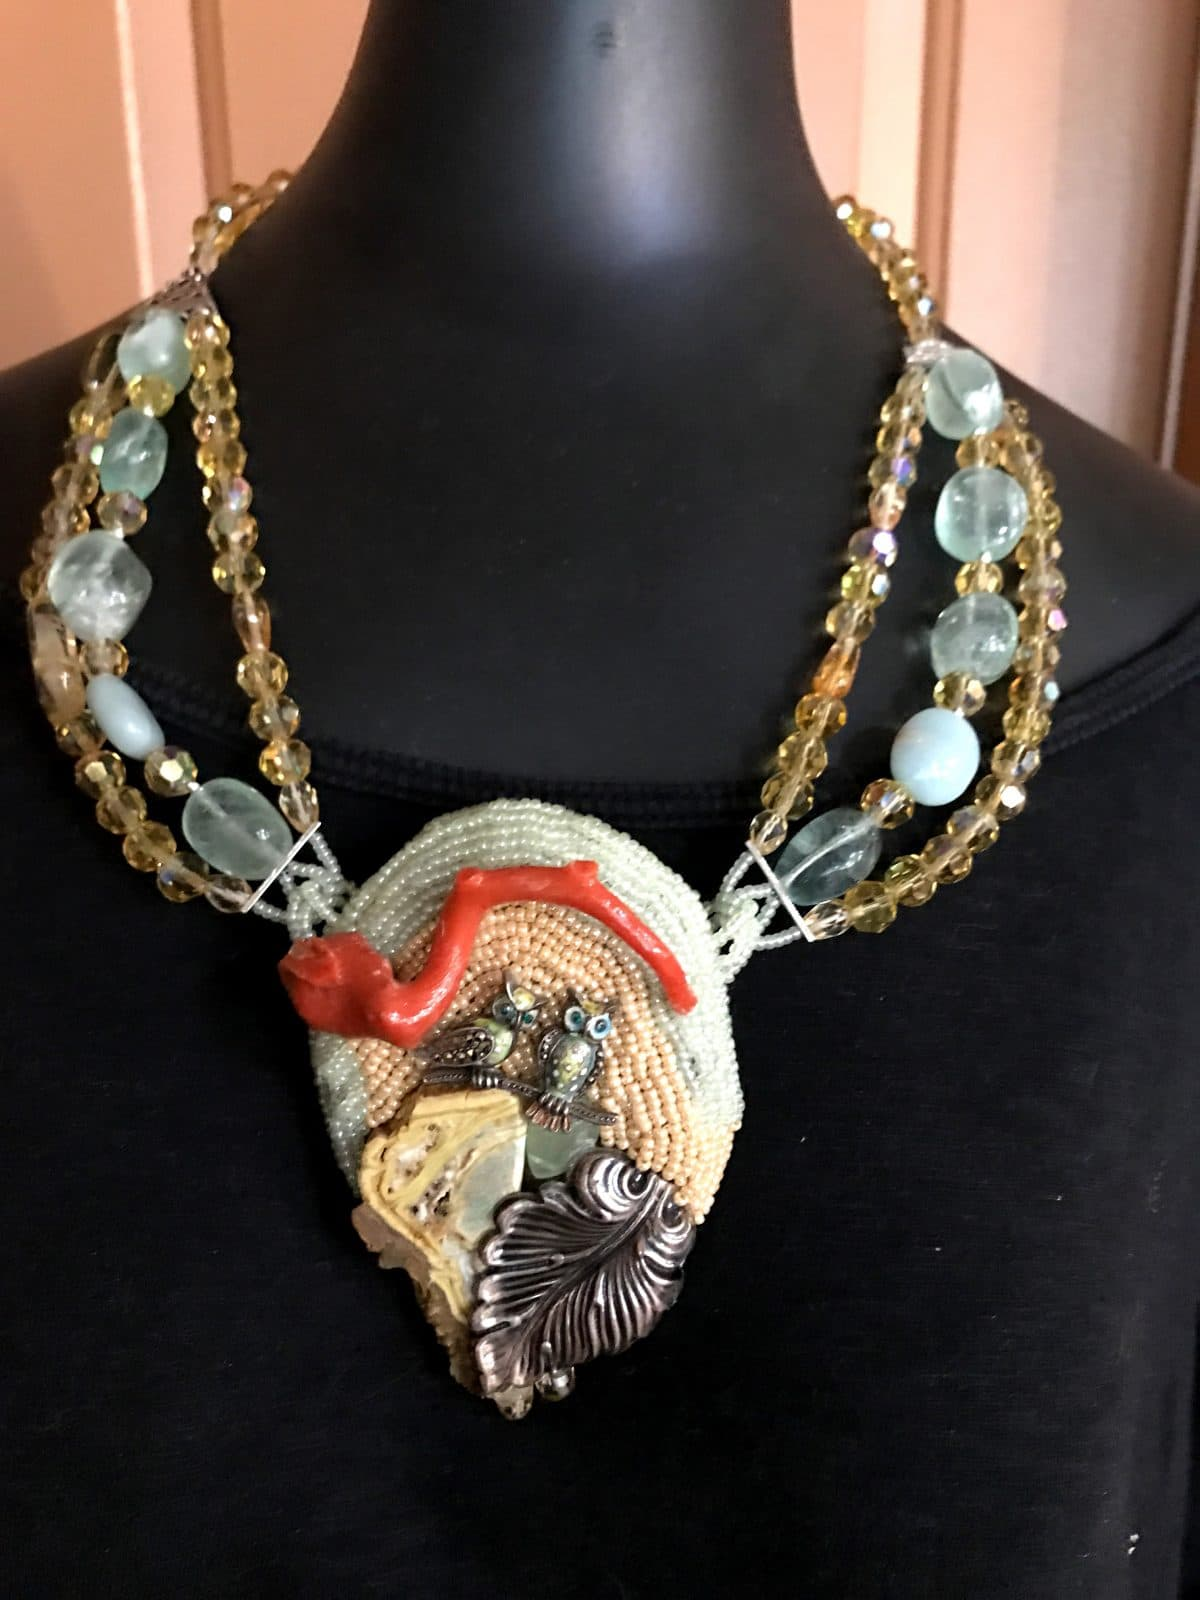 This necklace called Owly depicts the energy of completion for Mary Ellen Merrigan of Mary Ellen Beads Albuquerque.